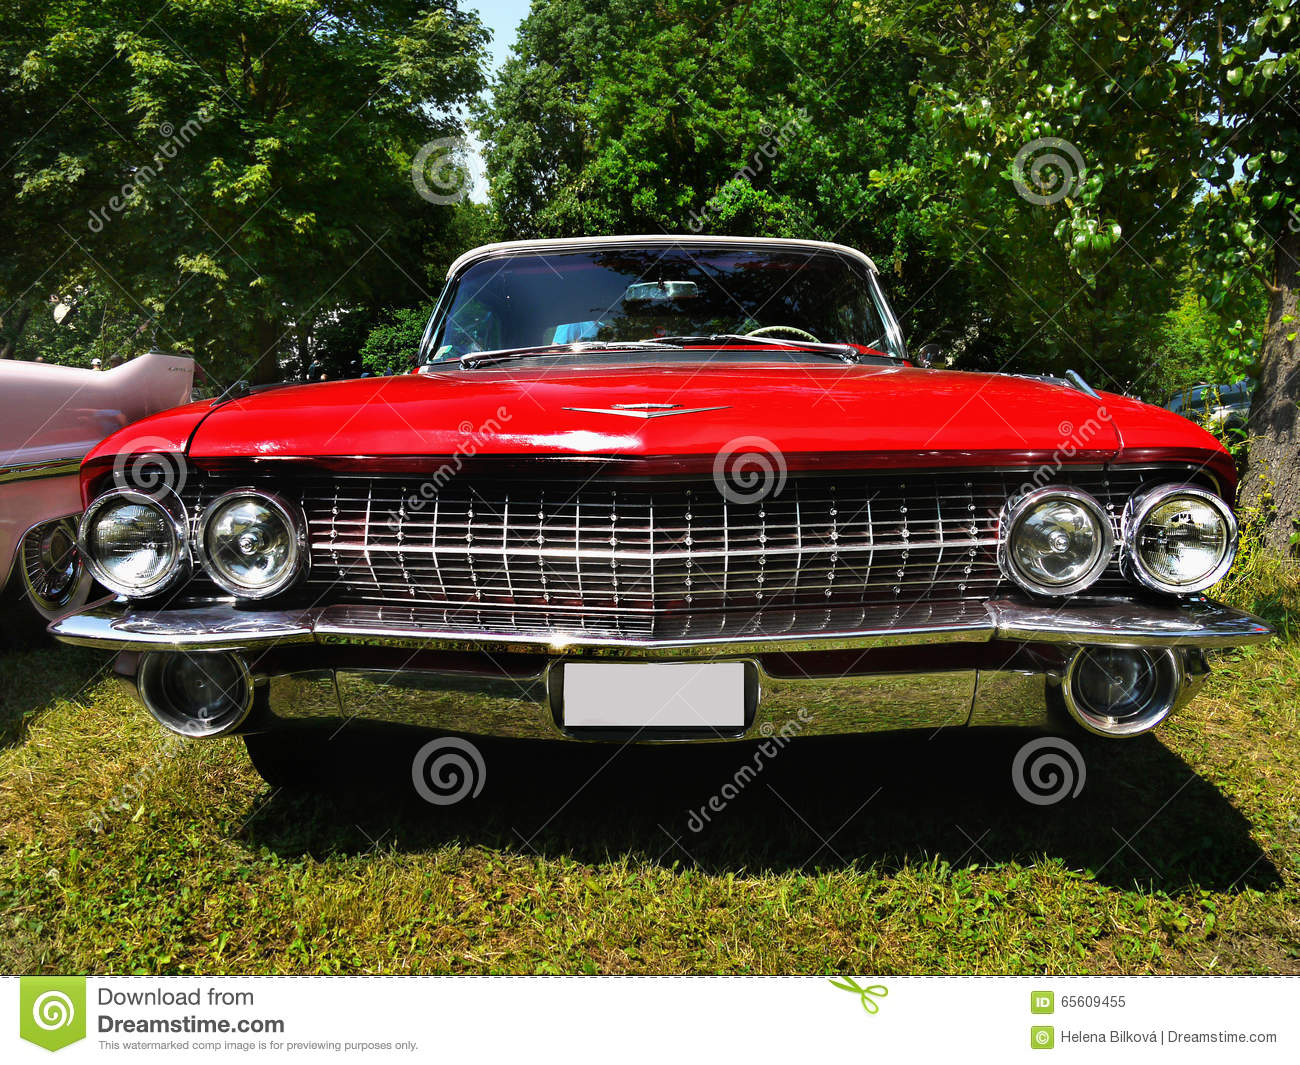 Cadillac classic american vintage cars editorial image for American and classic cars